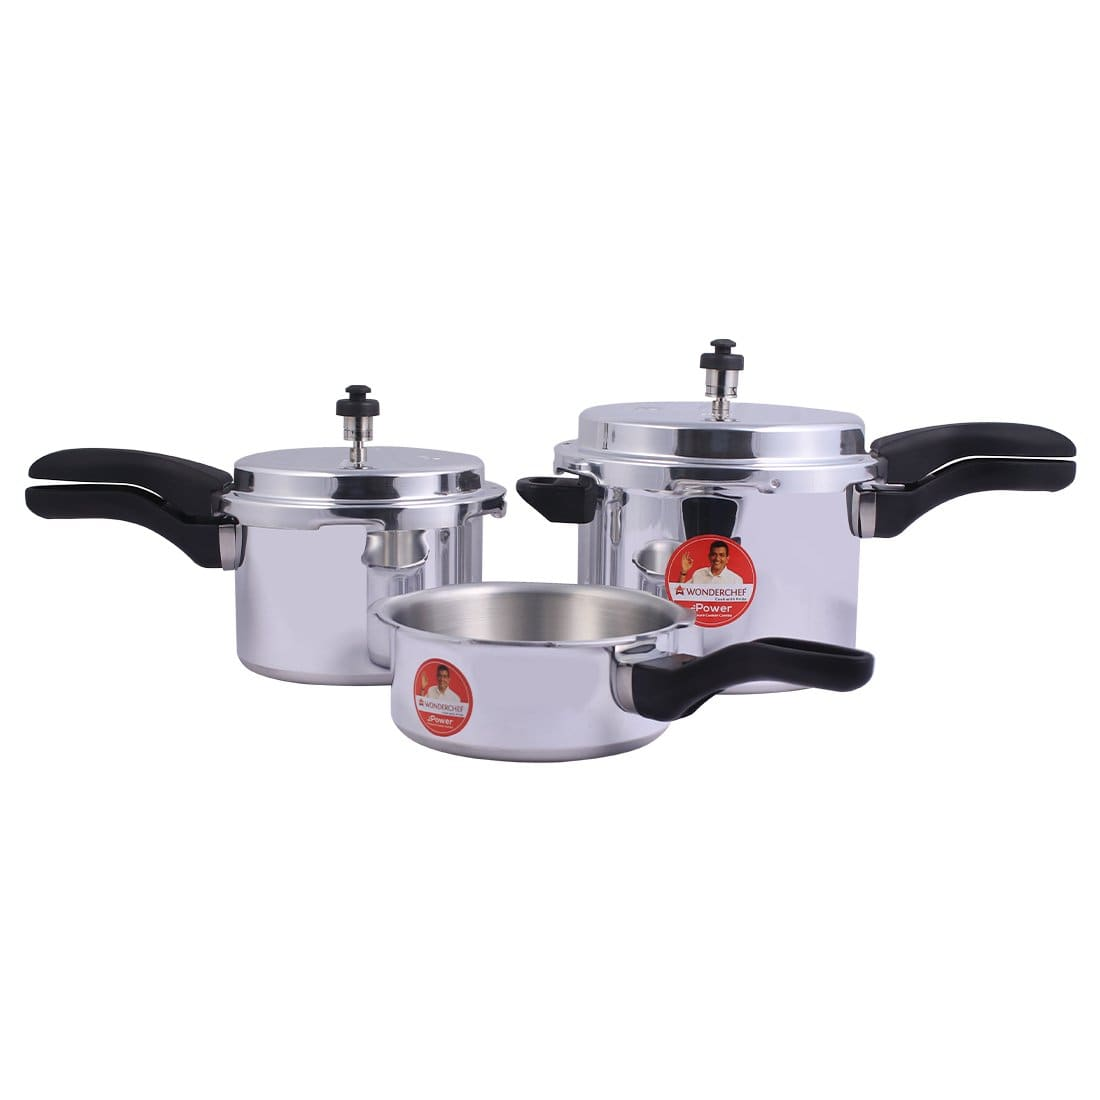 Wonderchef Power Pressure Aluminium Cooker Combo, 2,3,5L